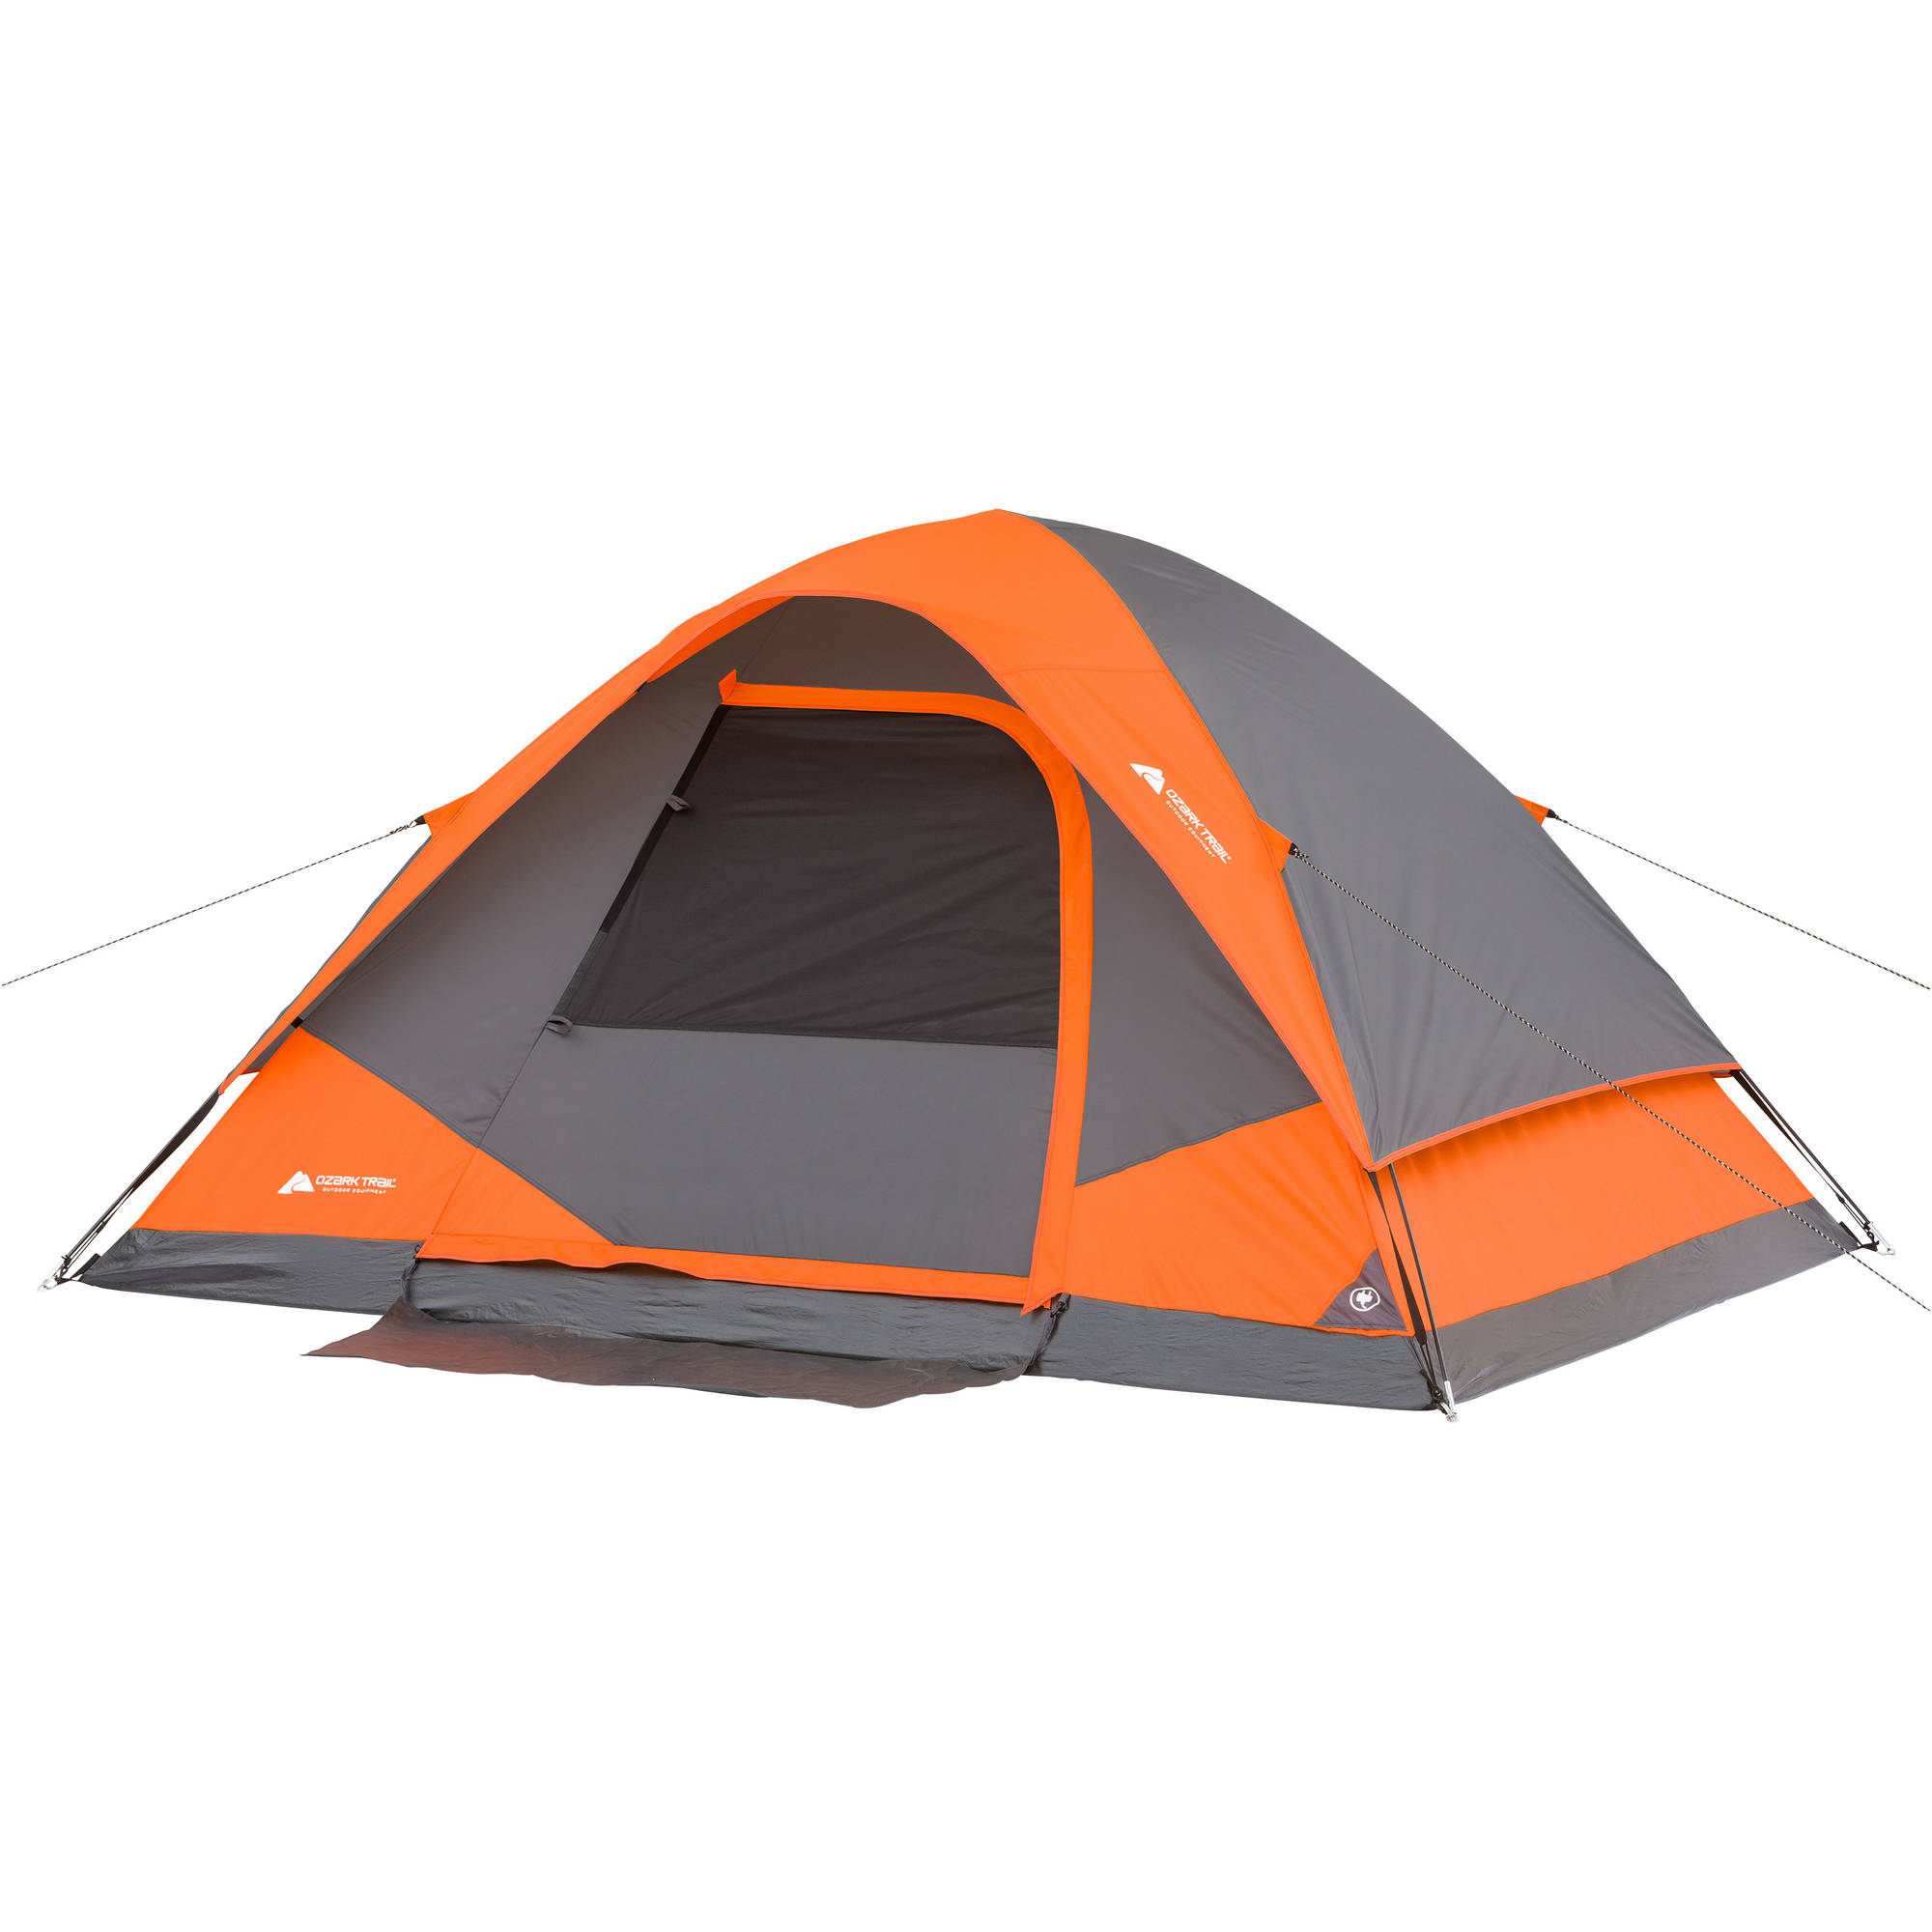 2000x2000 Changing To Night Clipart Tent Camping